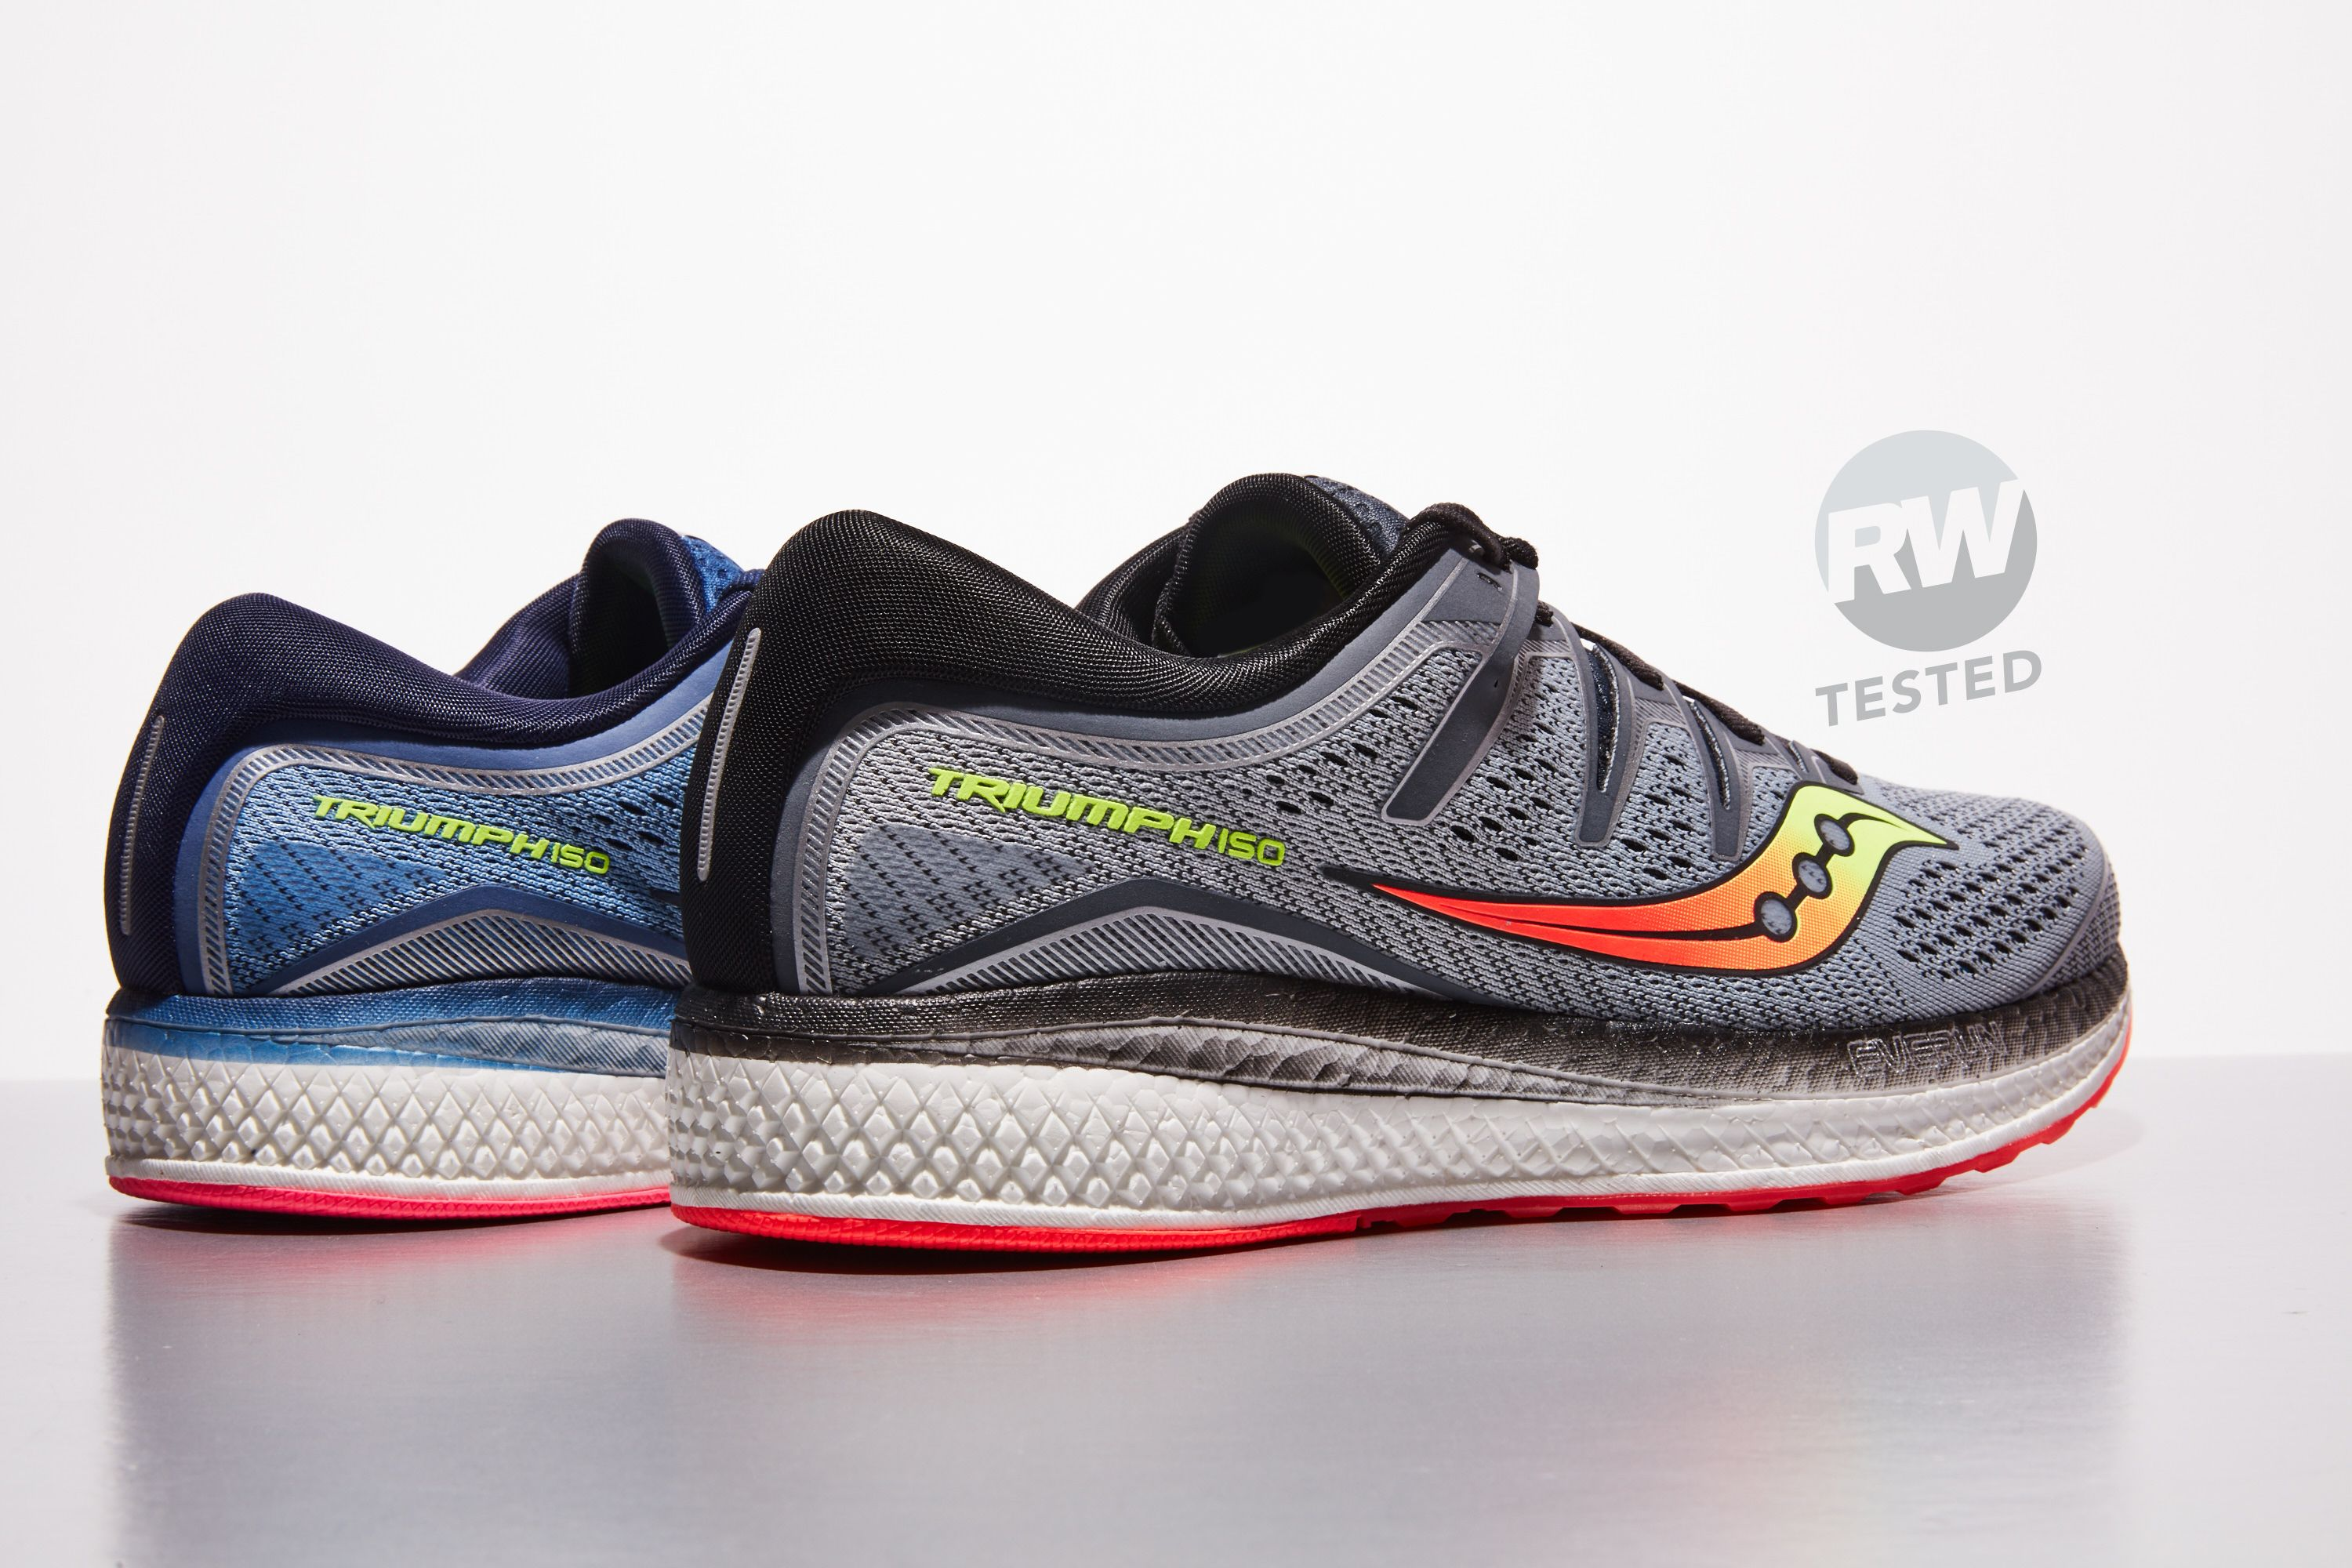 newest 6255d b940e The Saucony Triumph ISO 5 Delivers a Smooth and Comfortable Ride